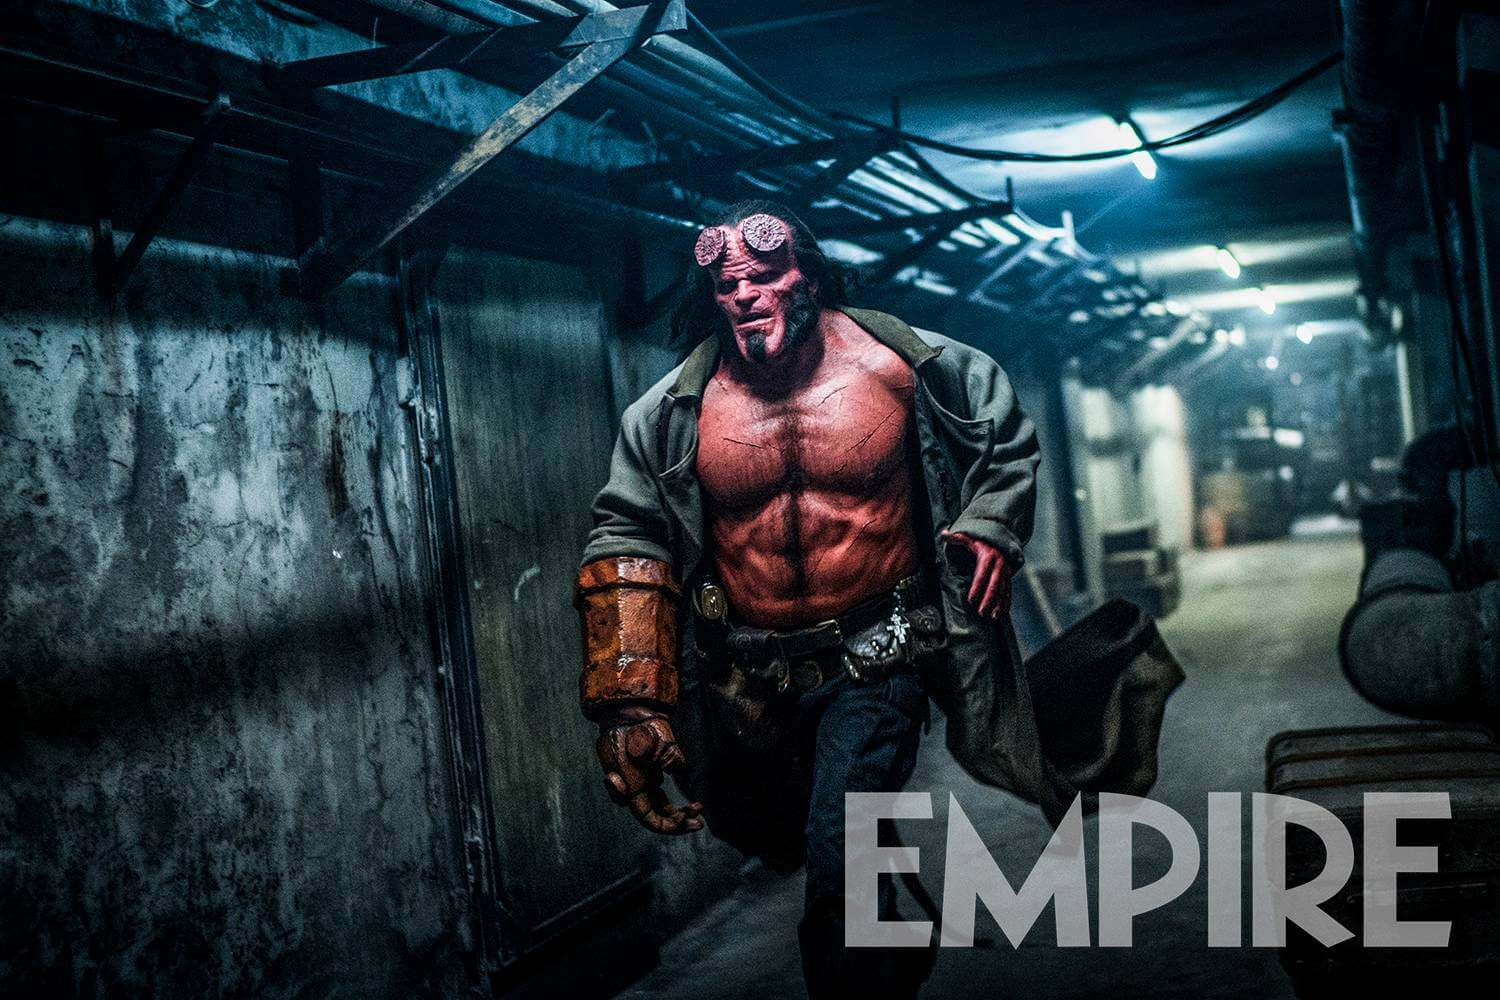 Hellboy Image Gives a Look-1